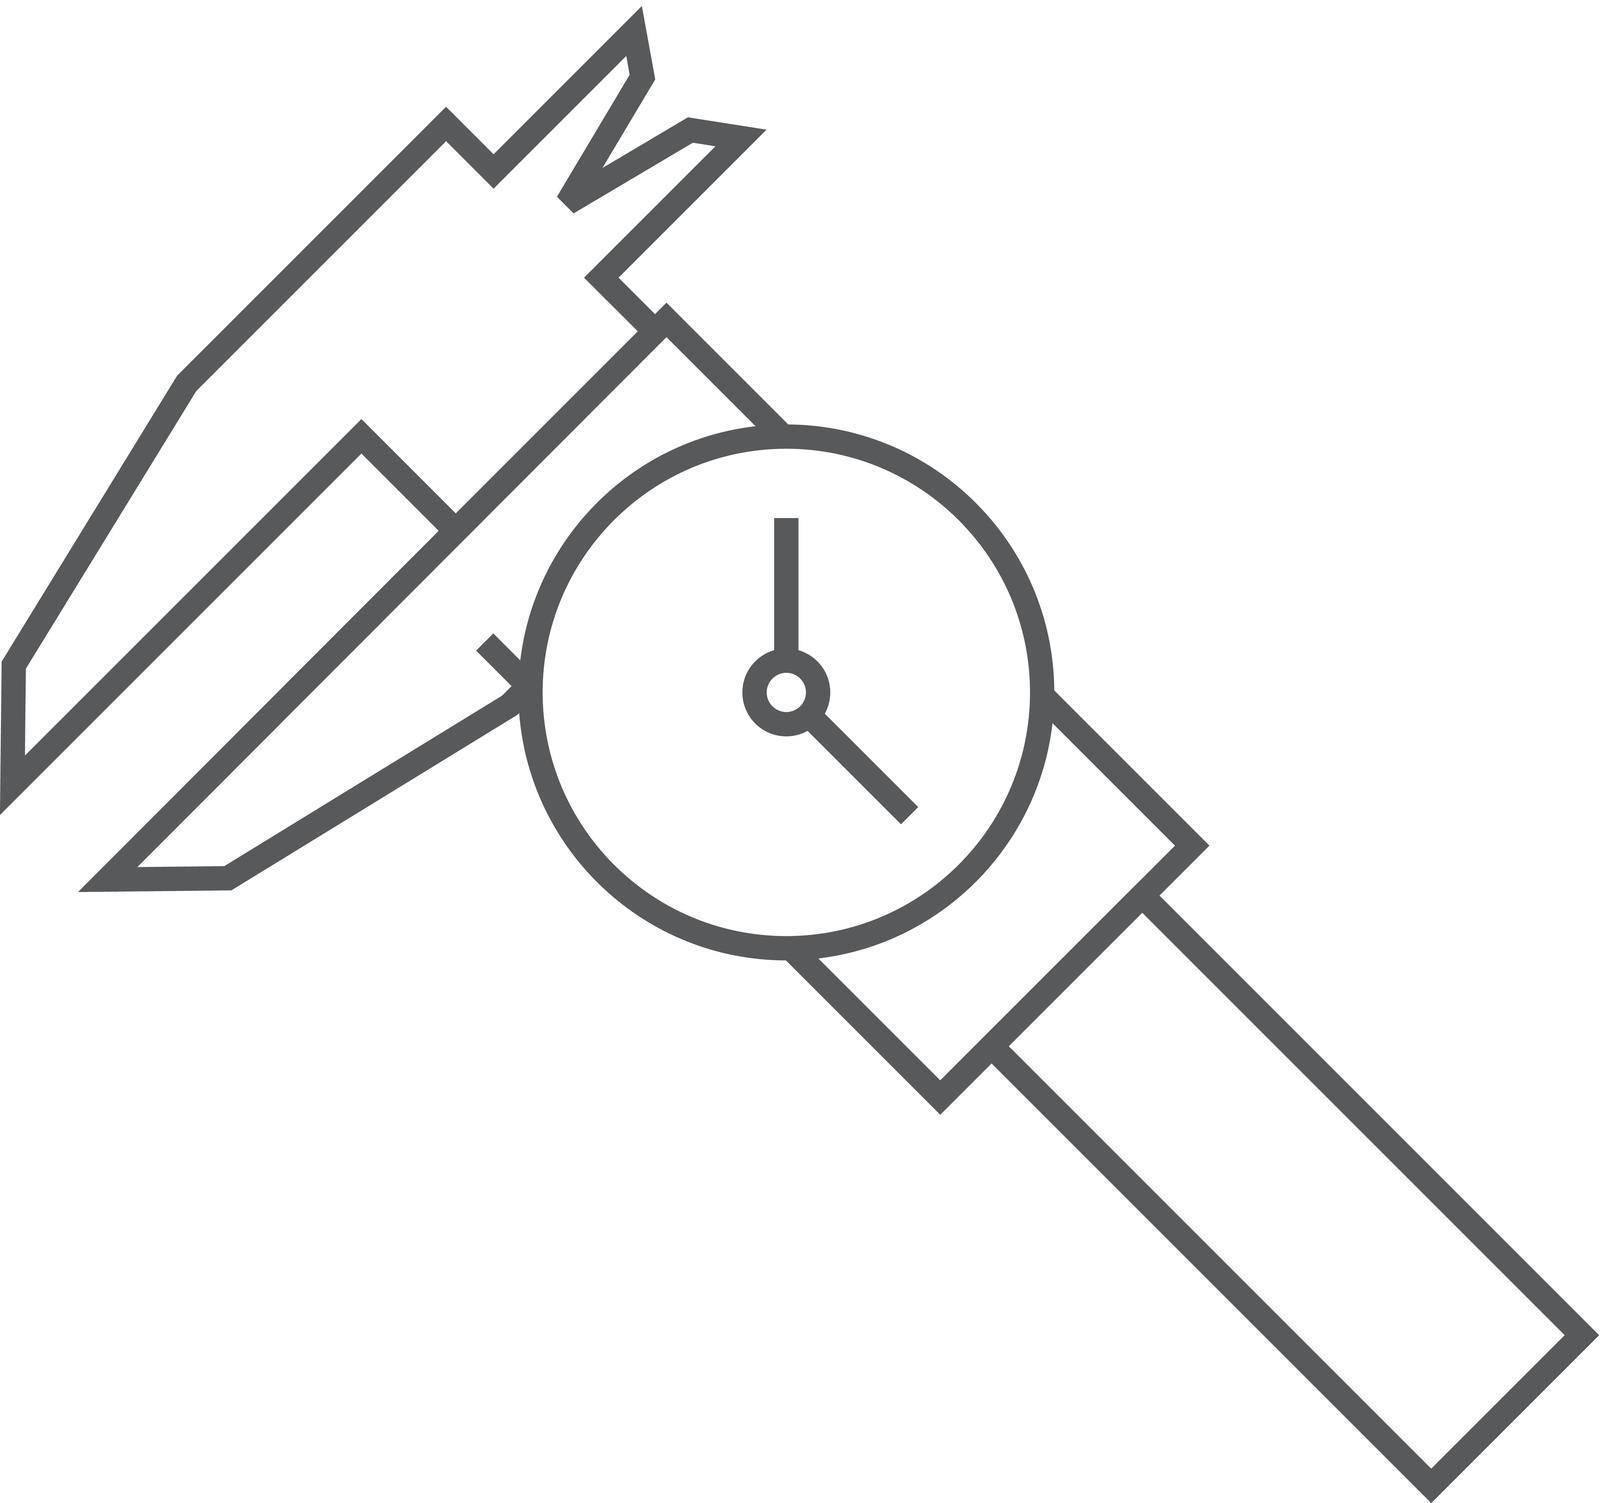 Digital caliper icon in thin outline style. Instrument equipment measurement accuracy millimeter